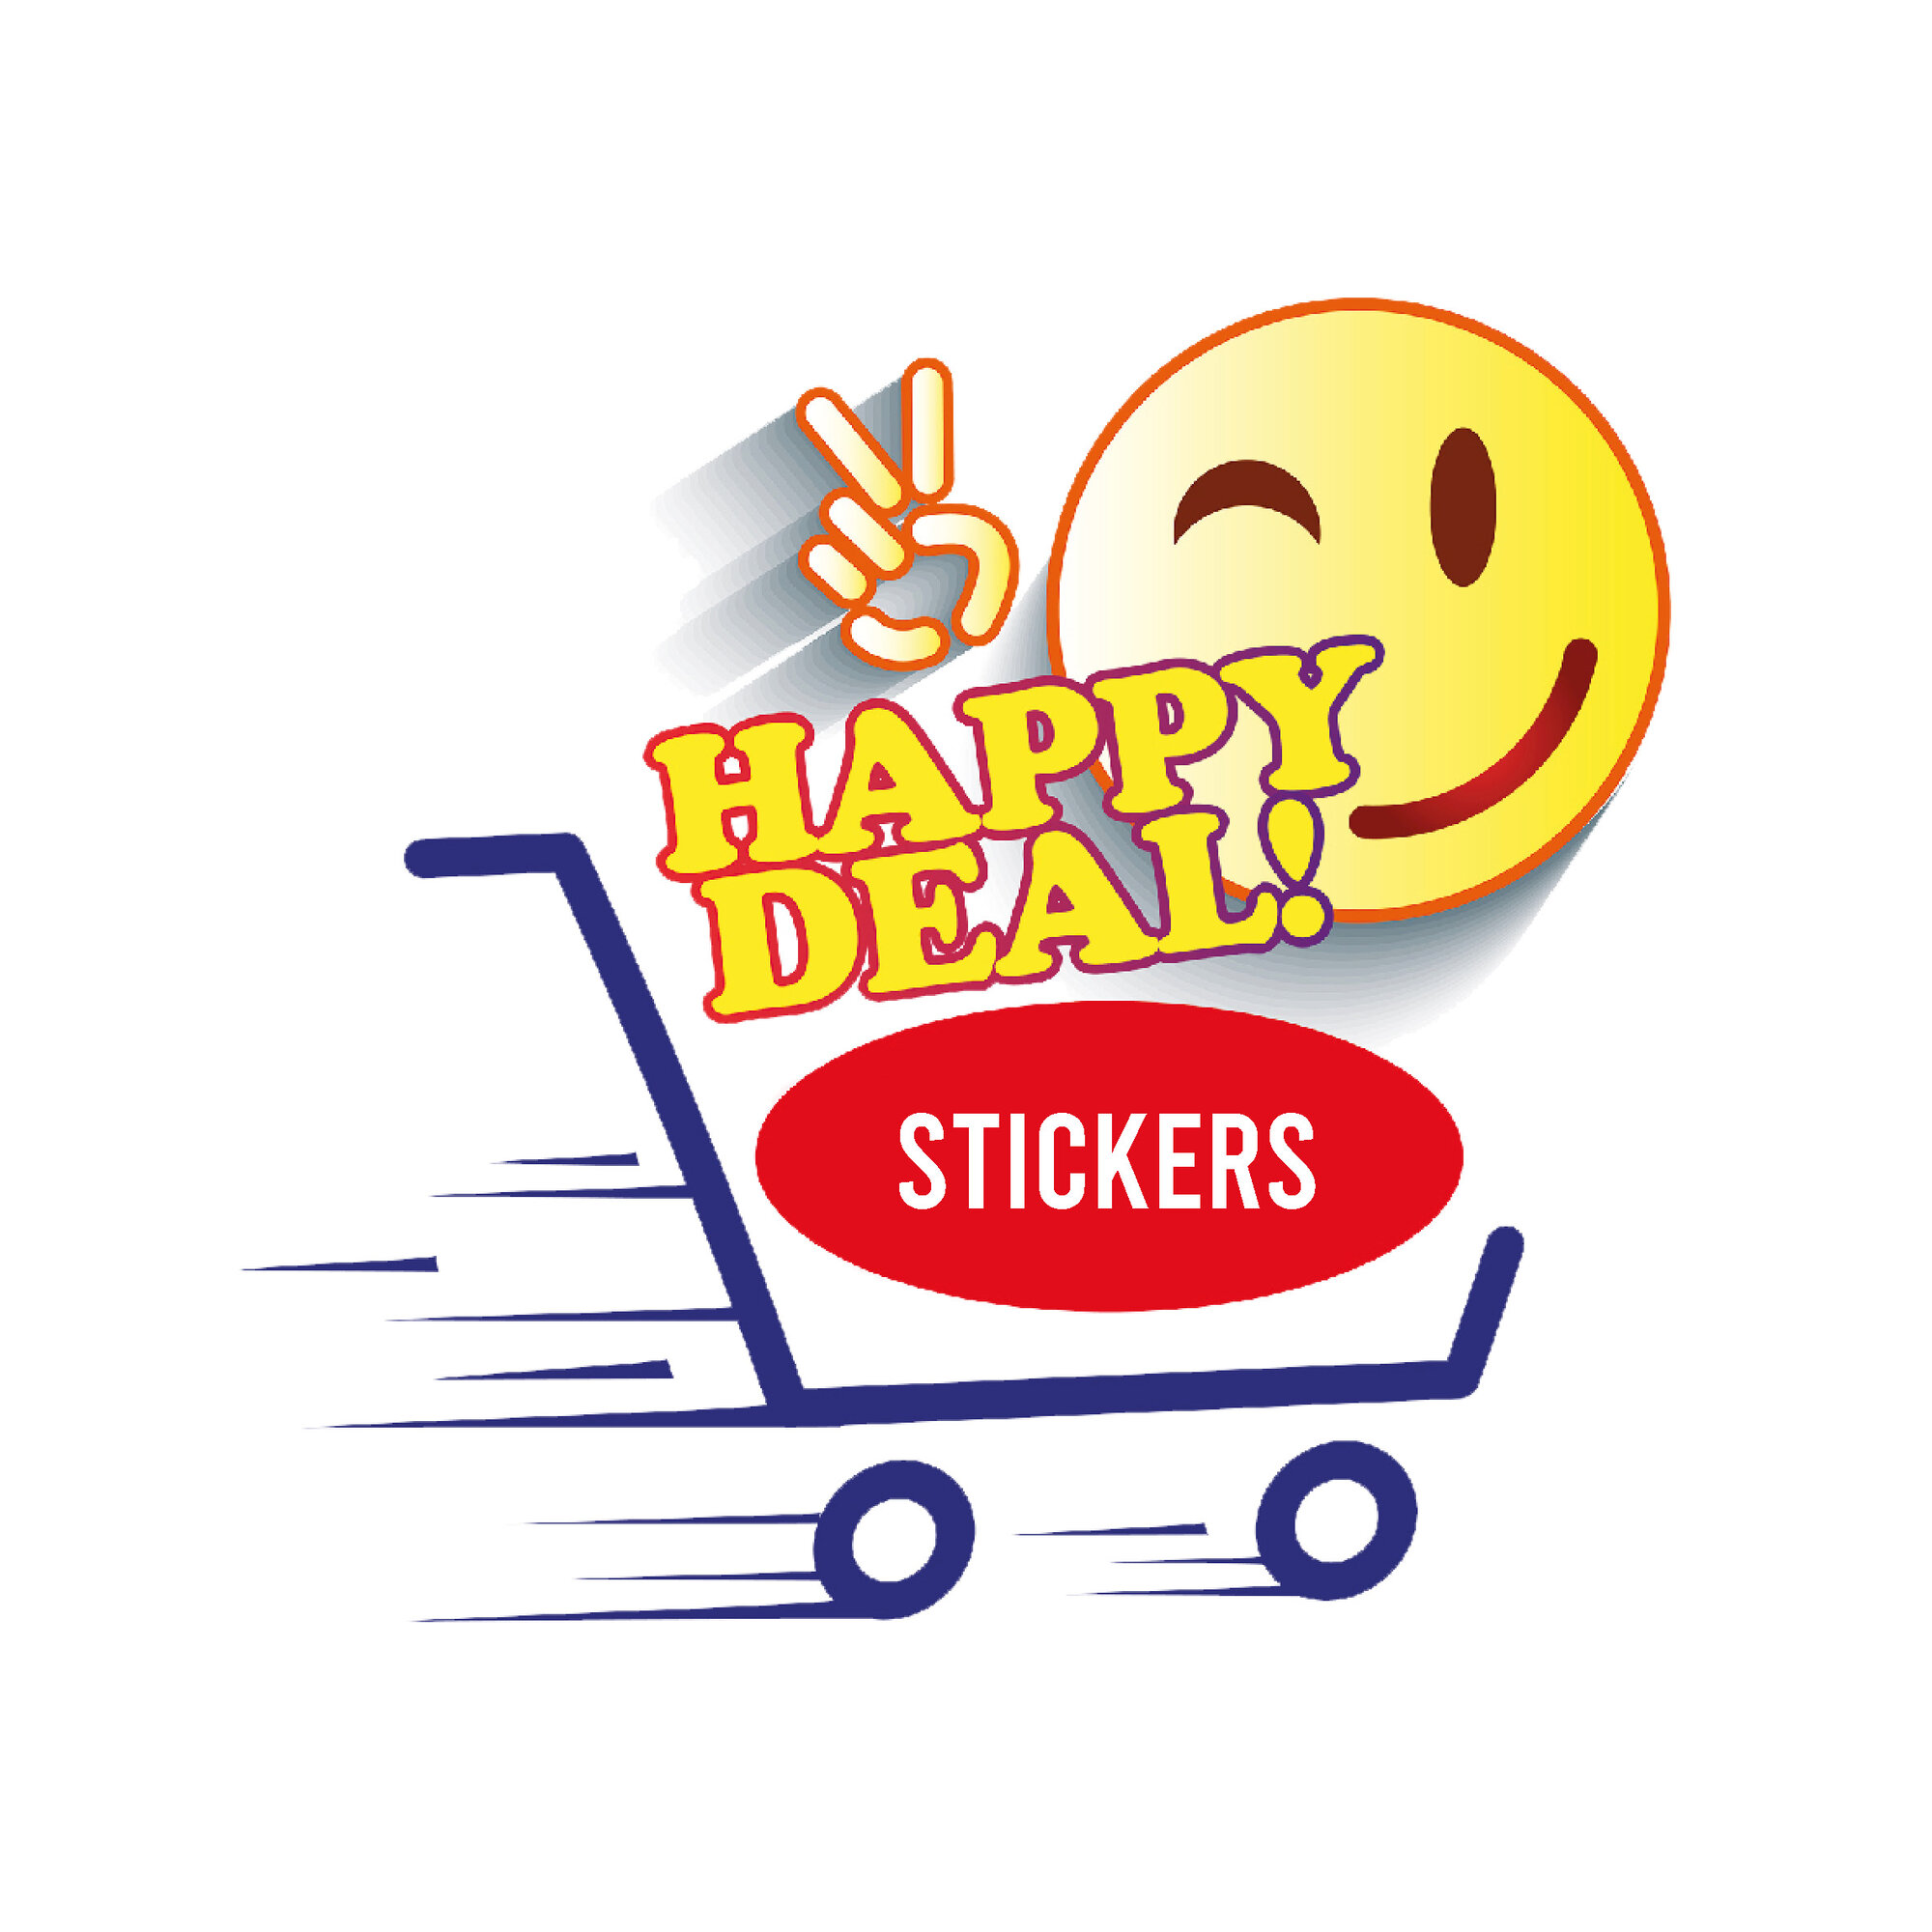 Stickers FREE Delivery